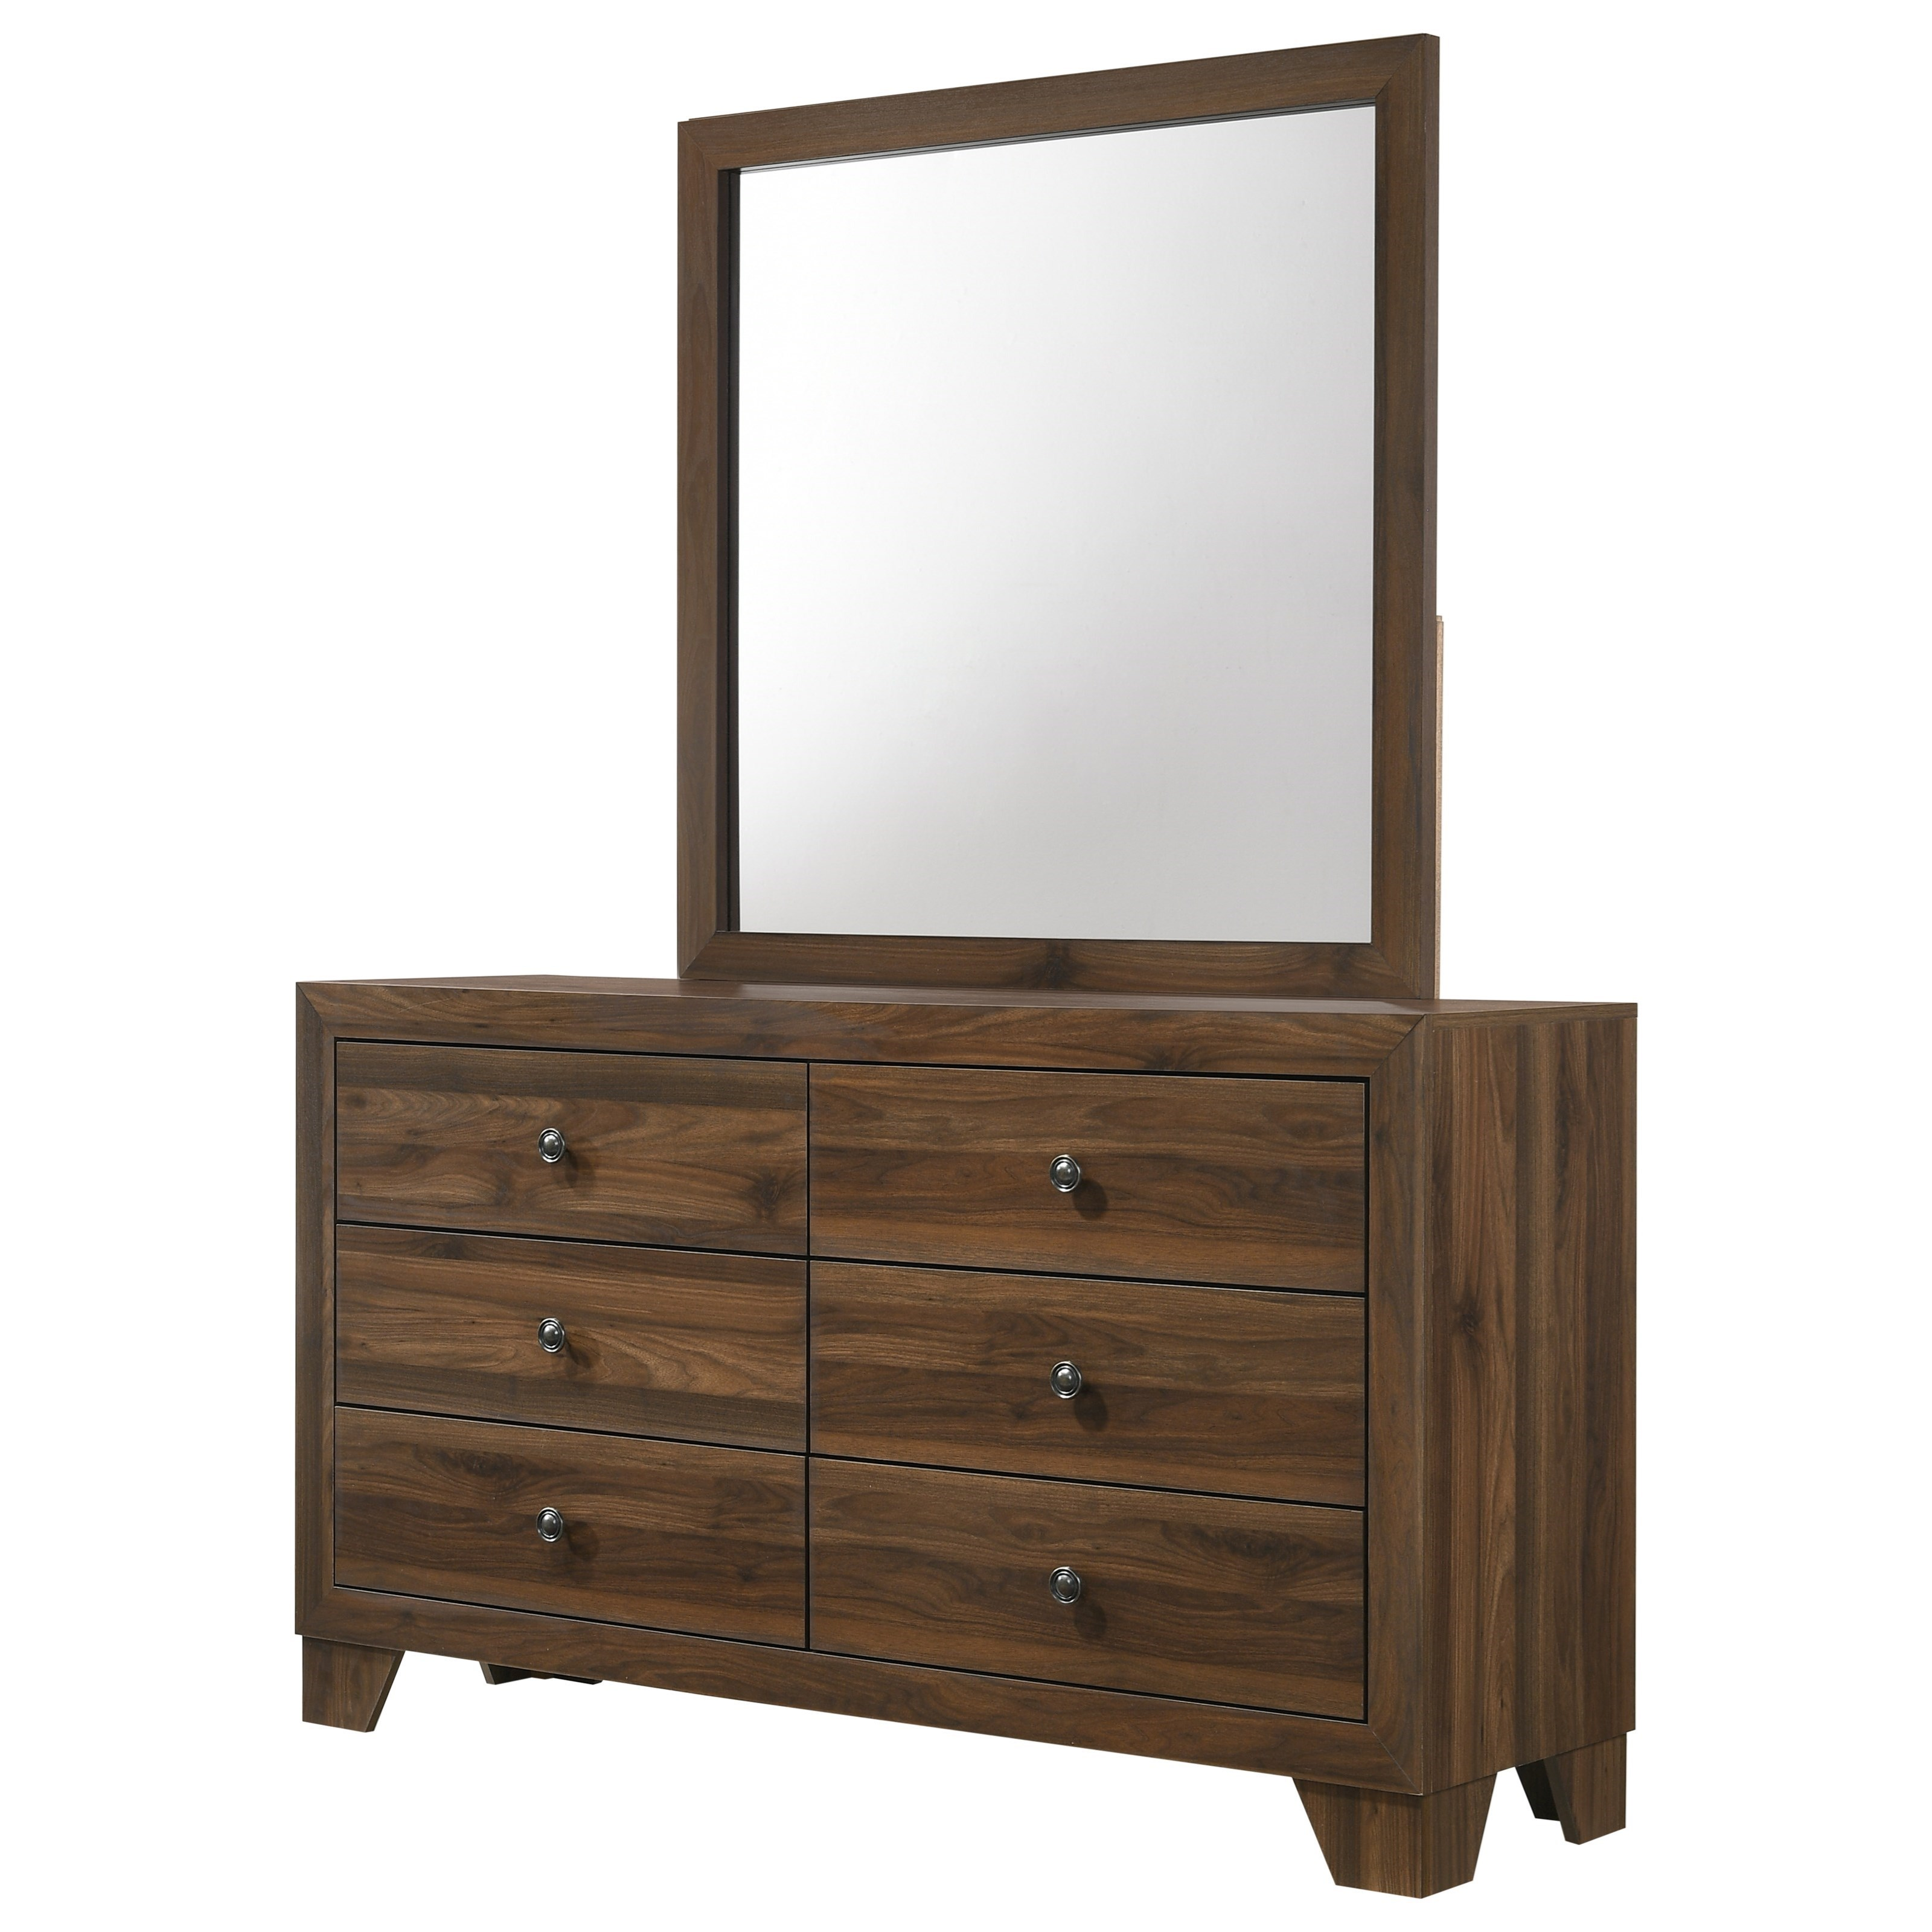 Millie Dresser and Mirror Set by Crown Mark at Northeast Factory Direct